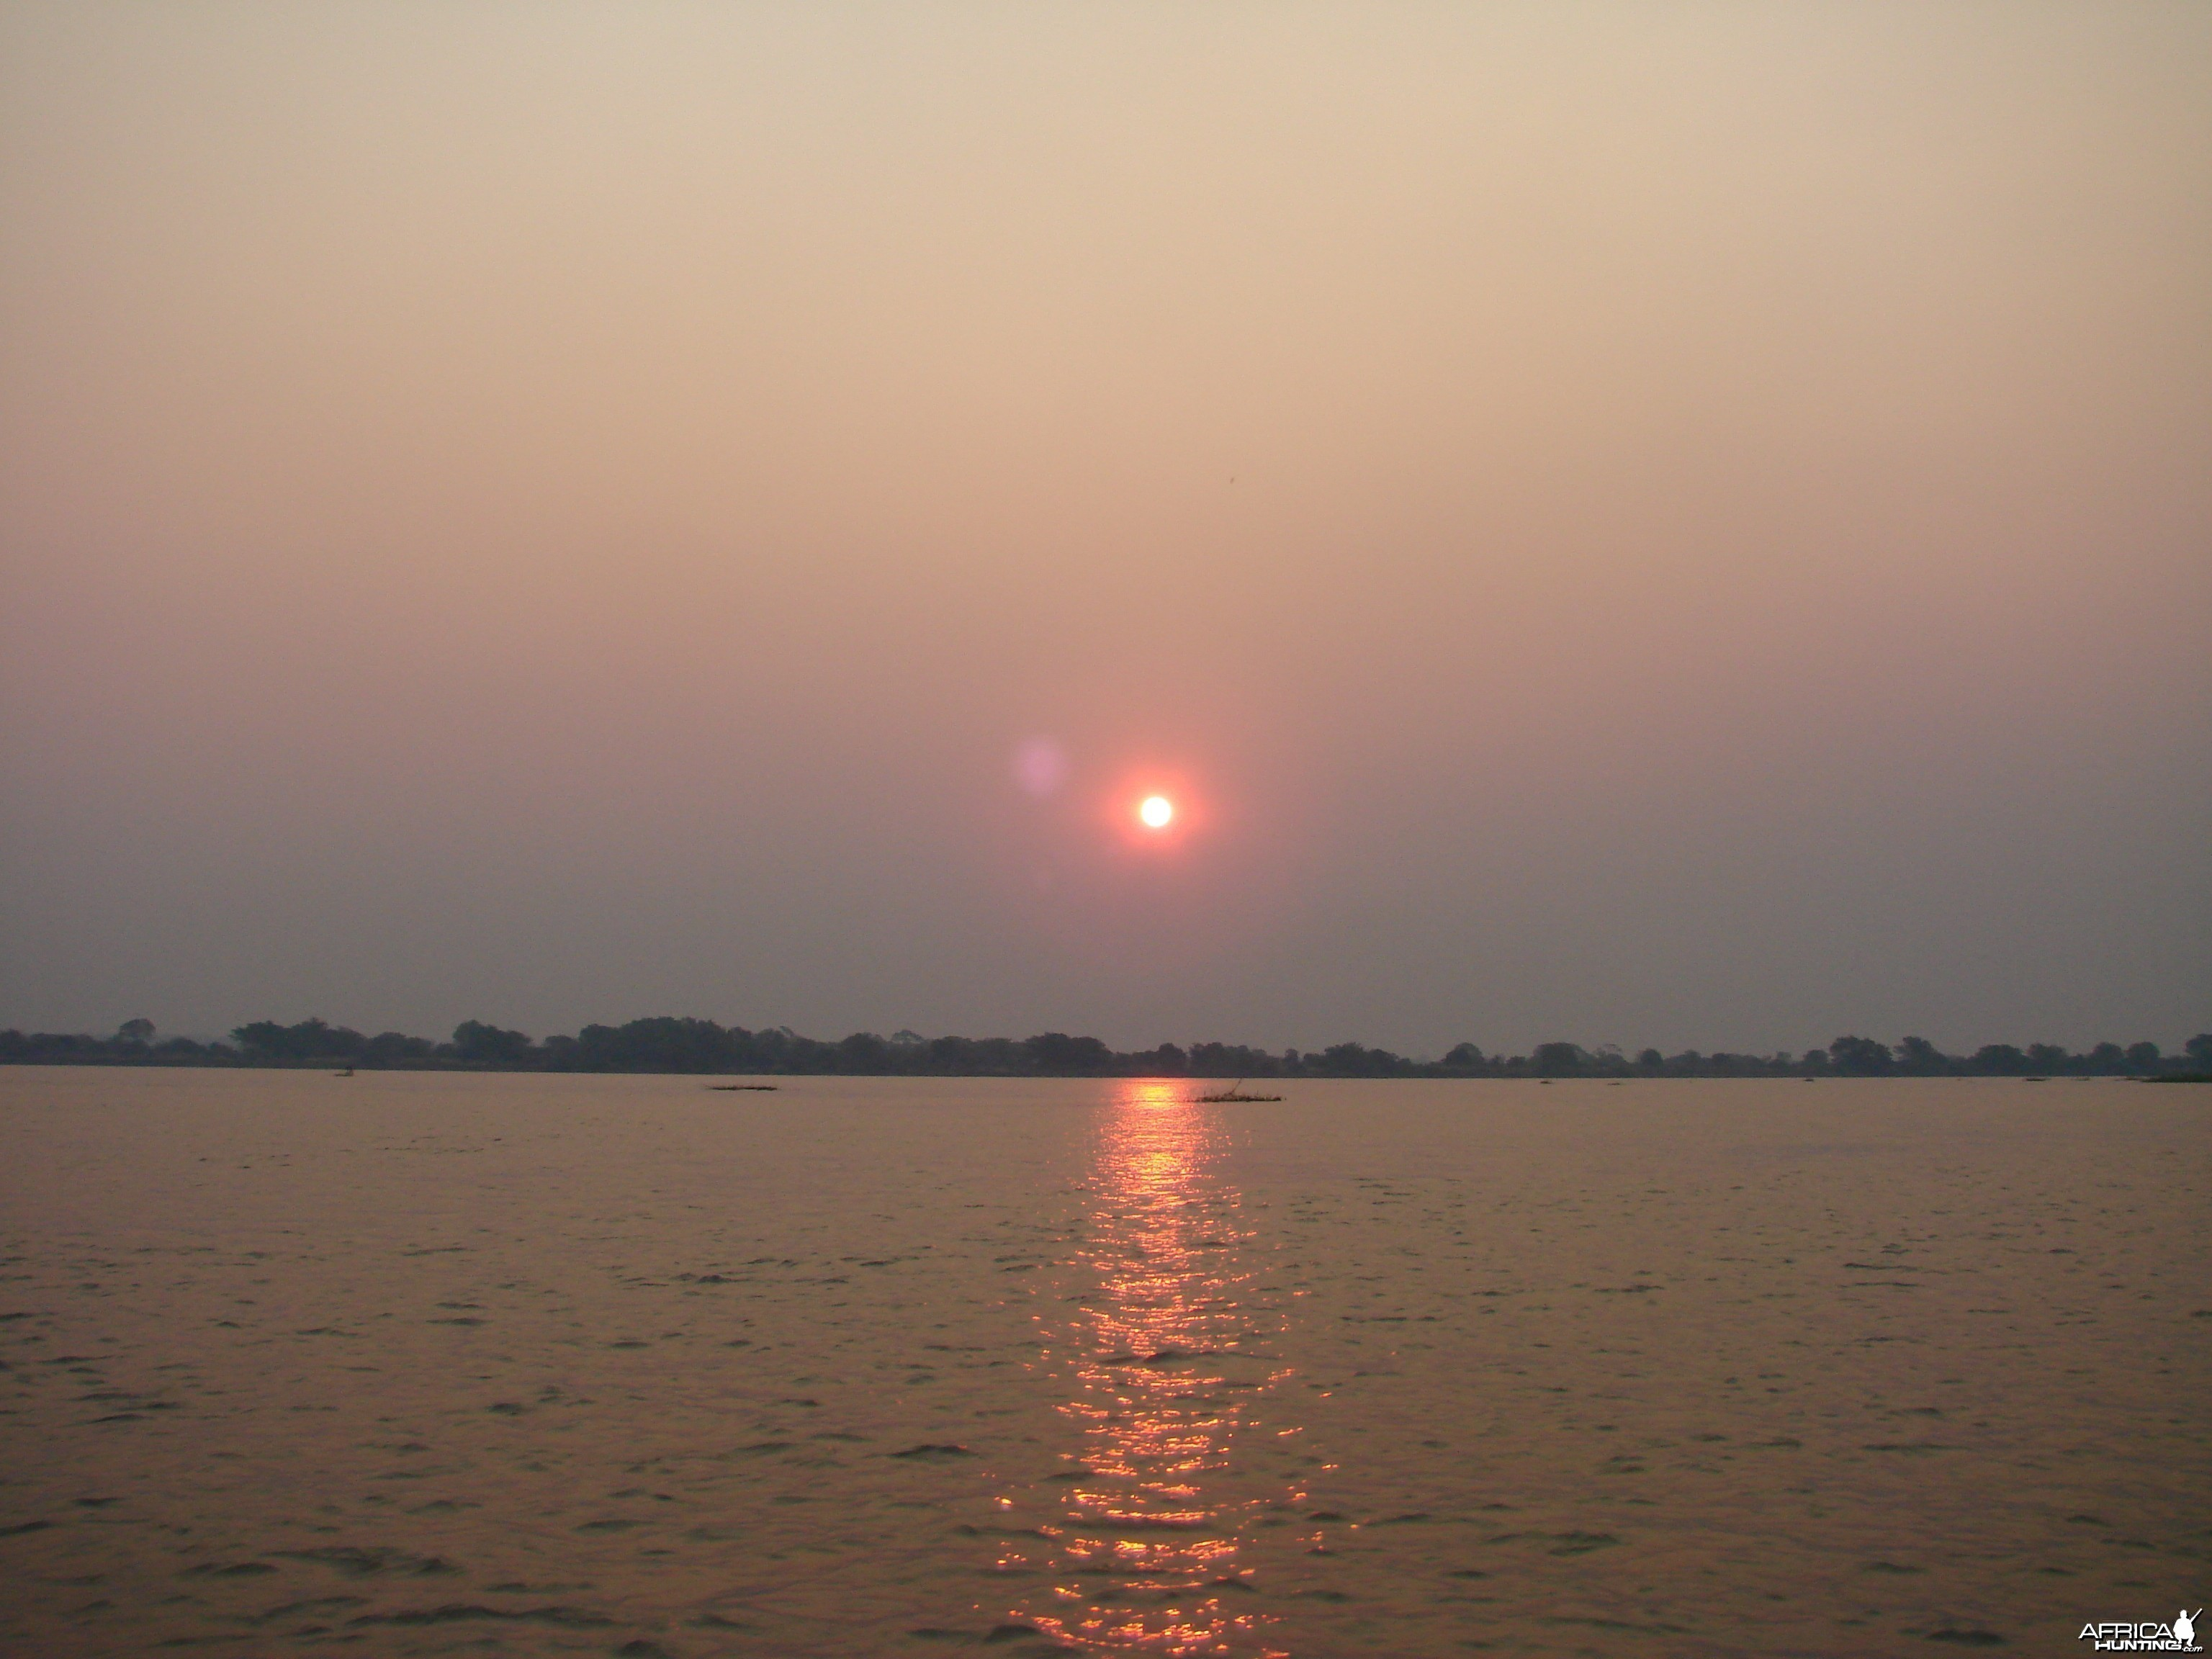 Sunrise on the Zambezi - Mozambique